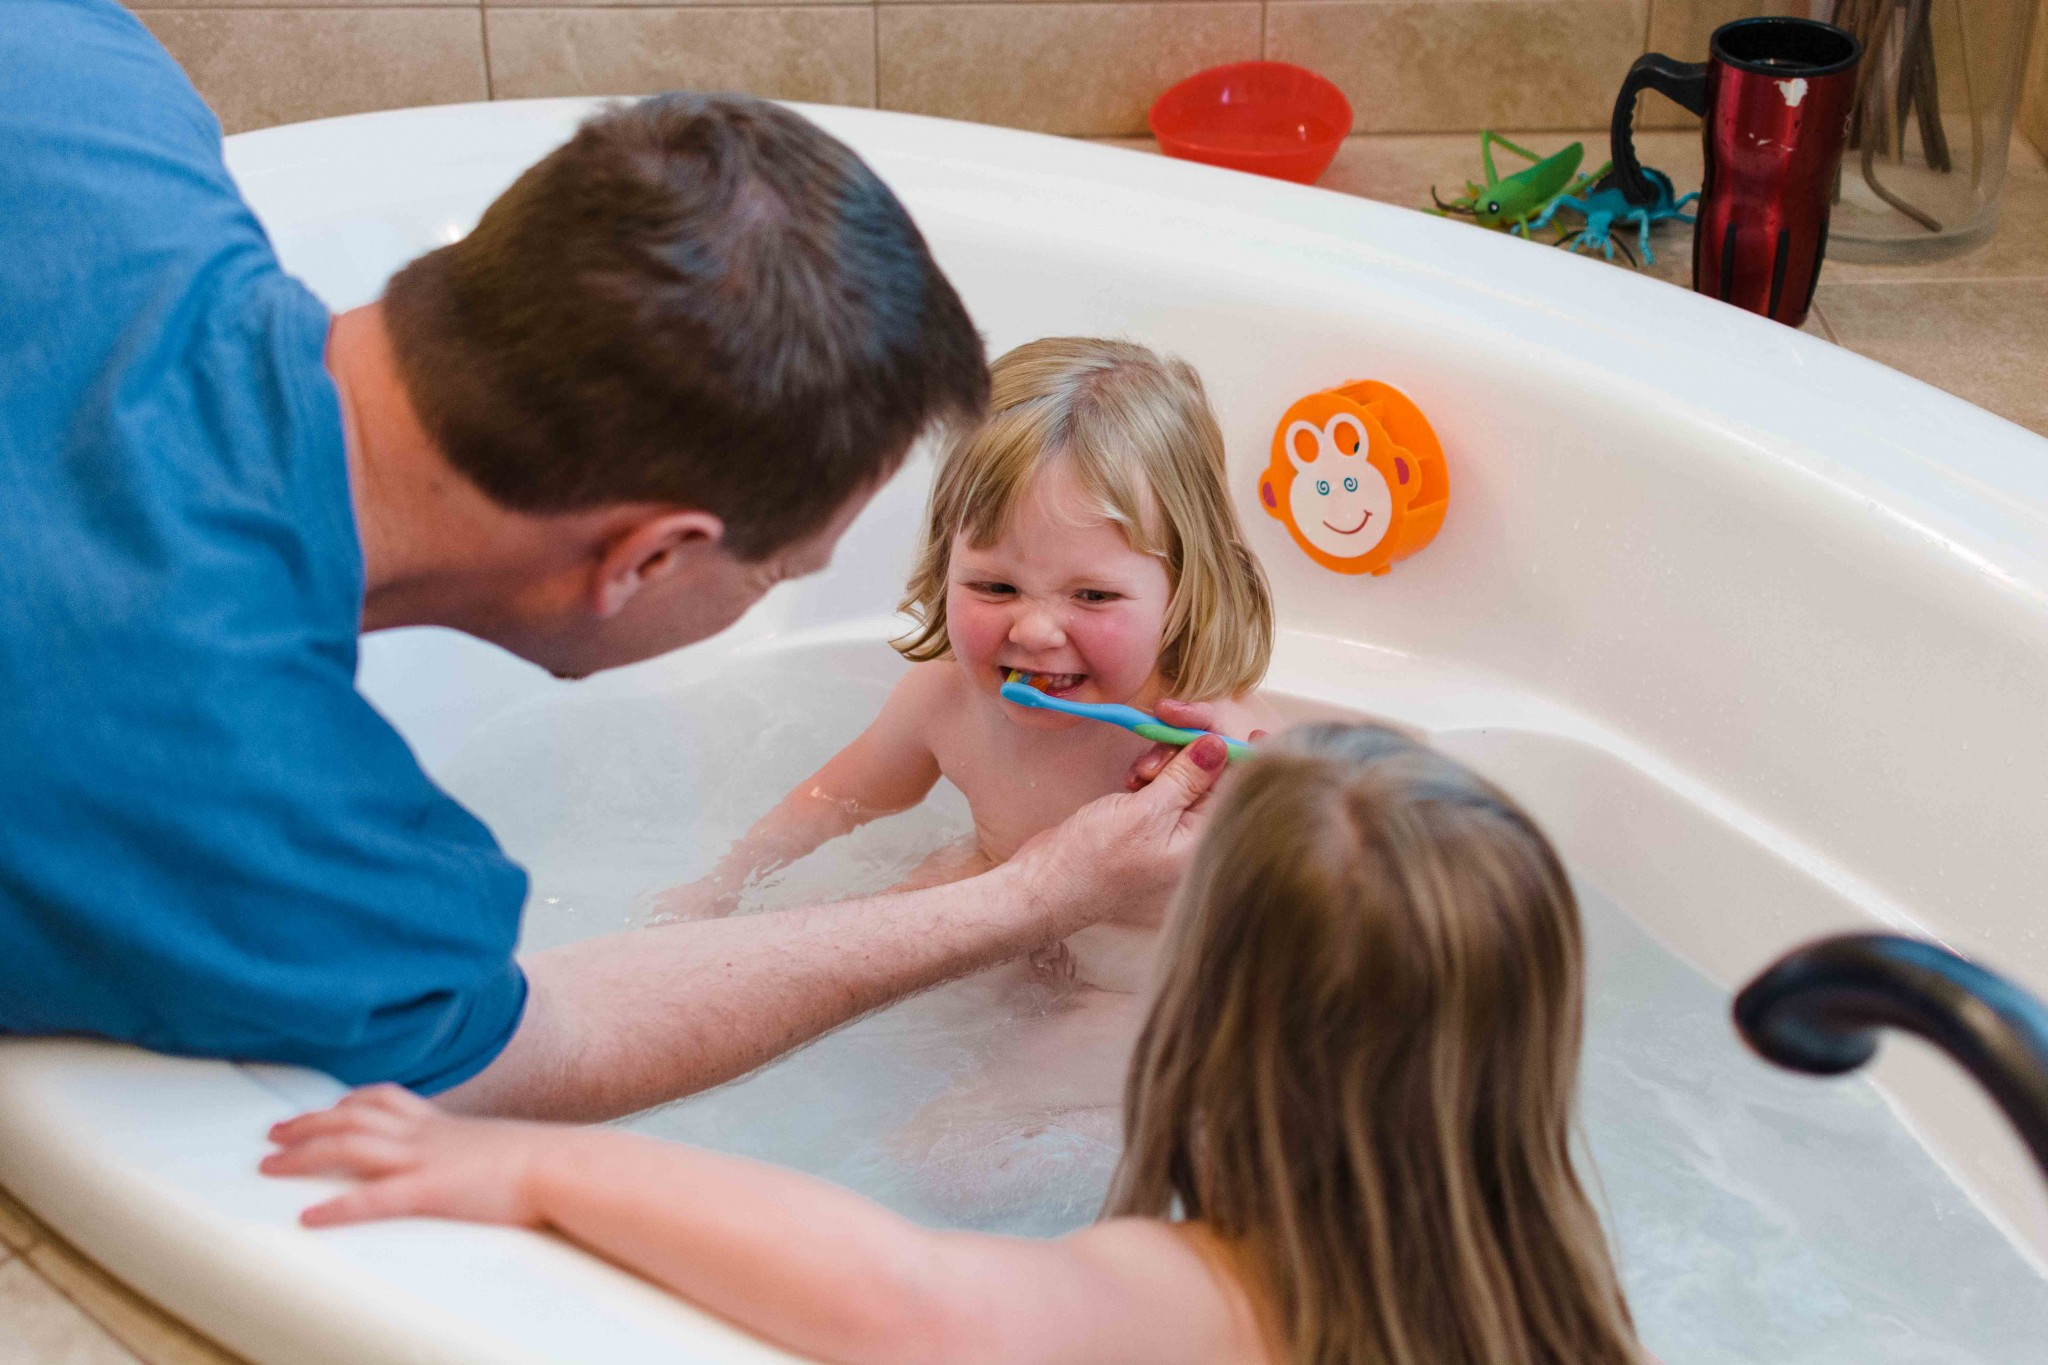 dad brushing teeth of toddlers in bath documentary candid family photography